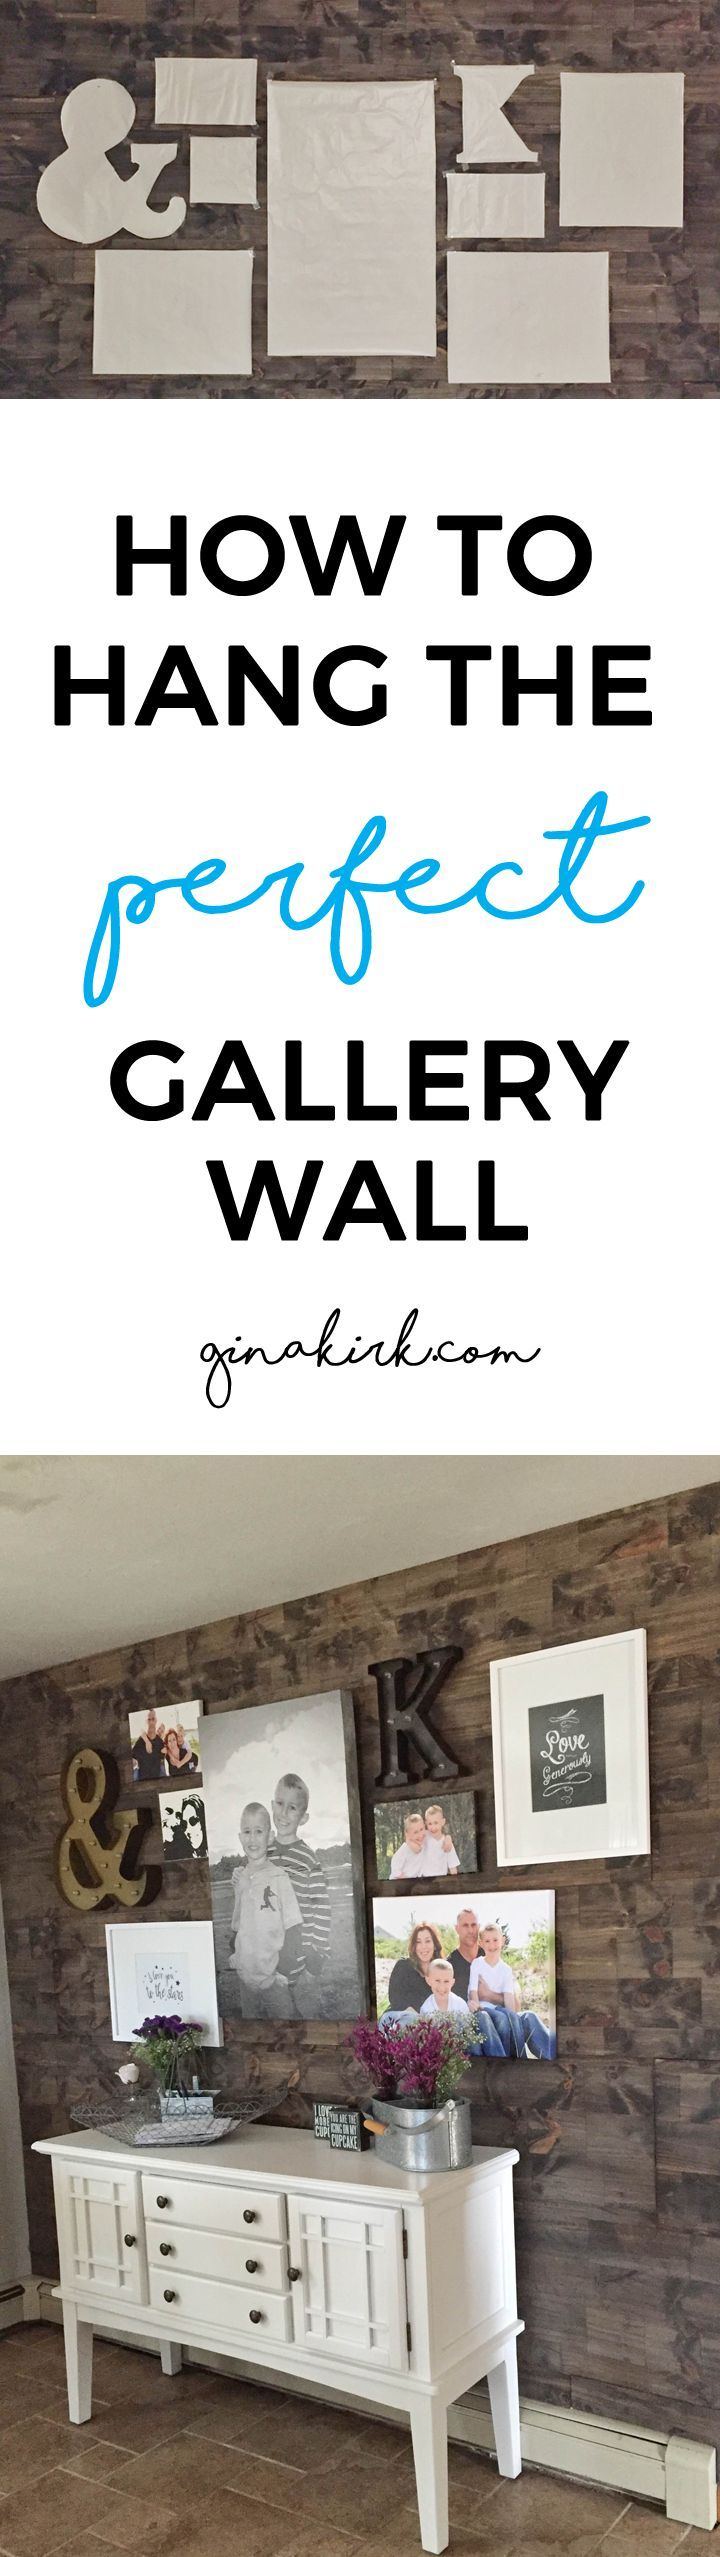 How to hang the perfect gallery wall - home decor, DIY gallery wall - my secret! Fixer upper inspired kitchen gallery wall!